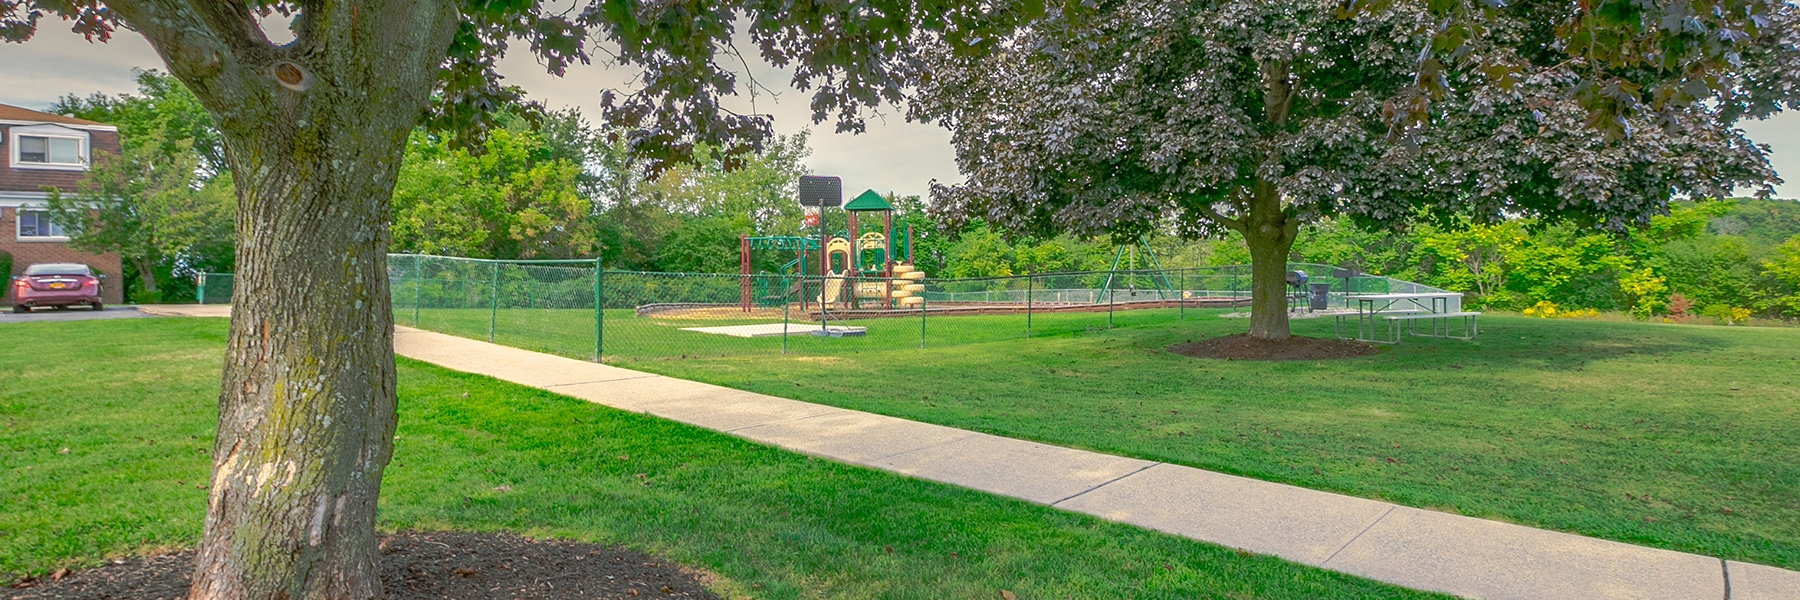 Knollcrest Village Apartments For Rent in Chester, NY Playground